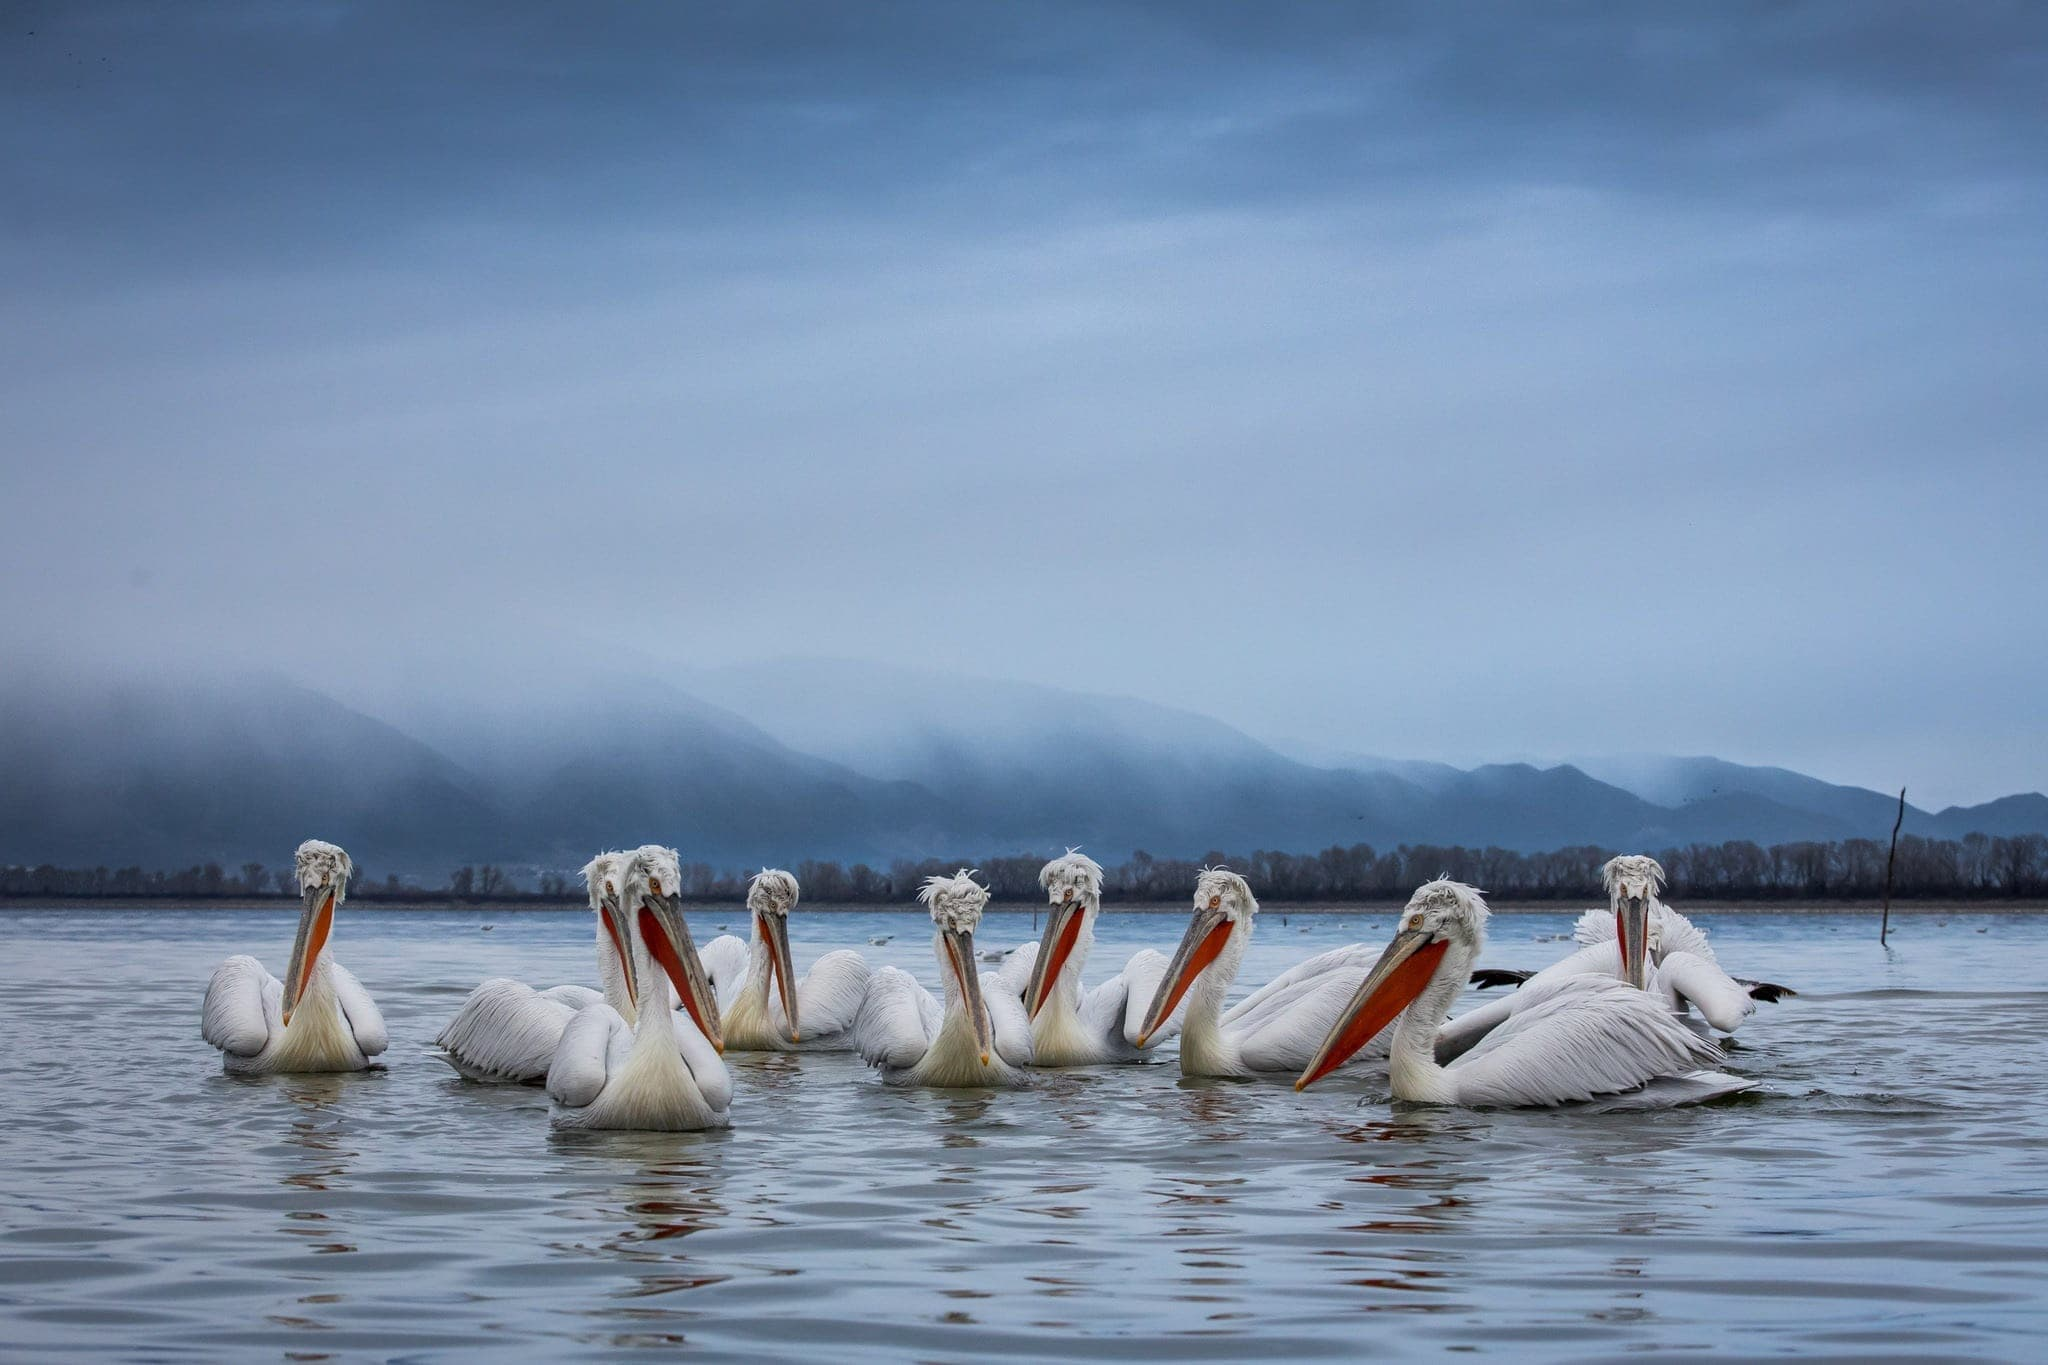 A Squadron Of Dalmatian Pelicans Floating On The Waters Of Lake Kerkini Photographed During The NaturesLens Dalmatian Pelicans Of Greece Photography Holiday